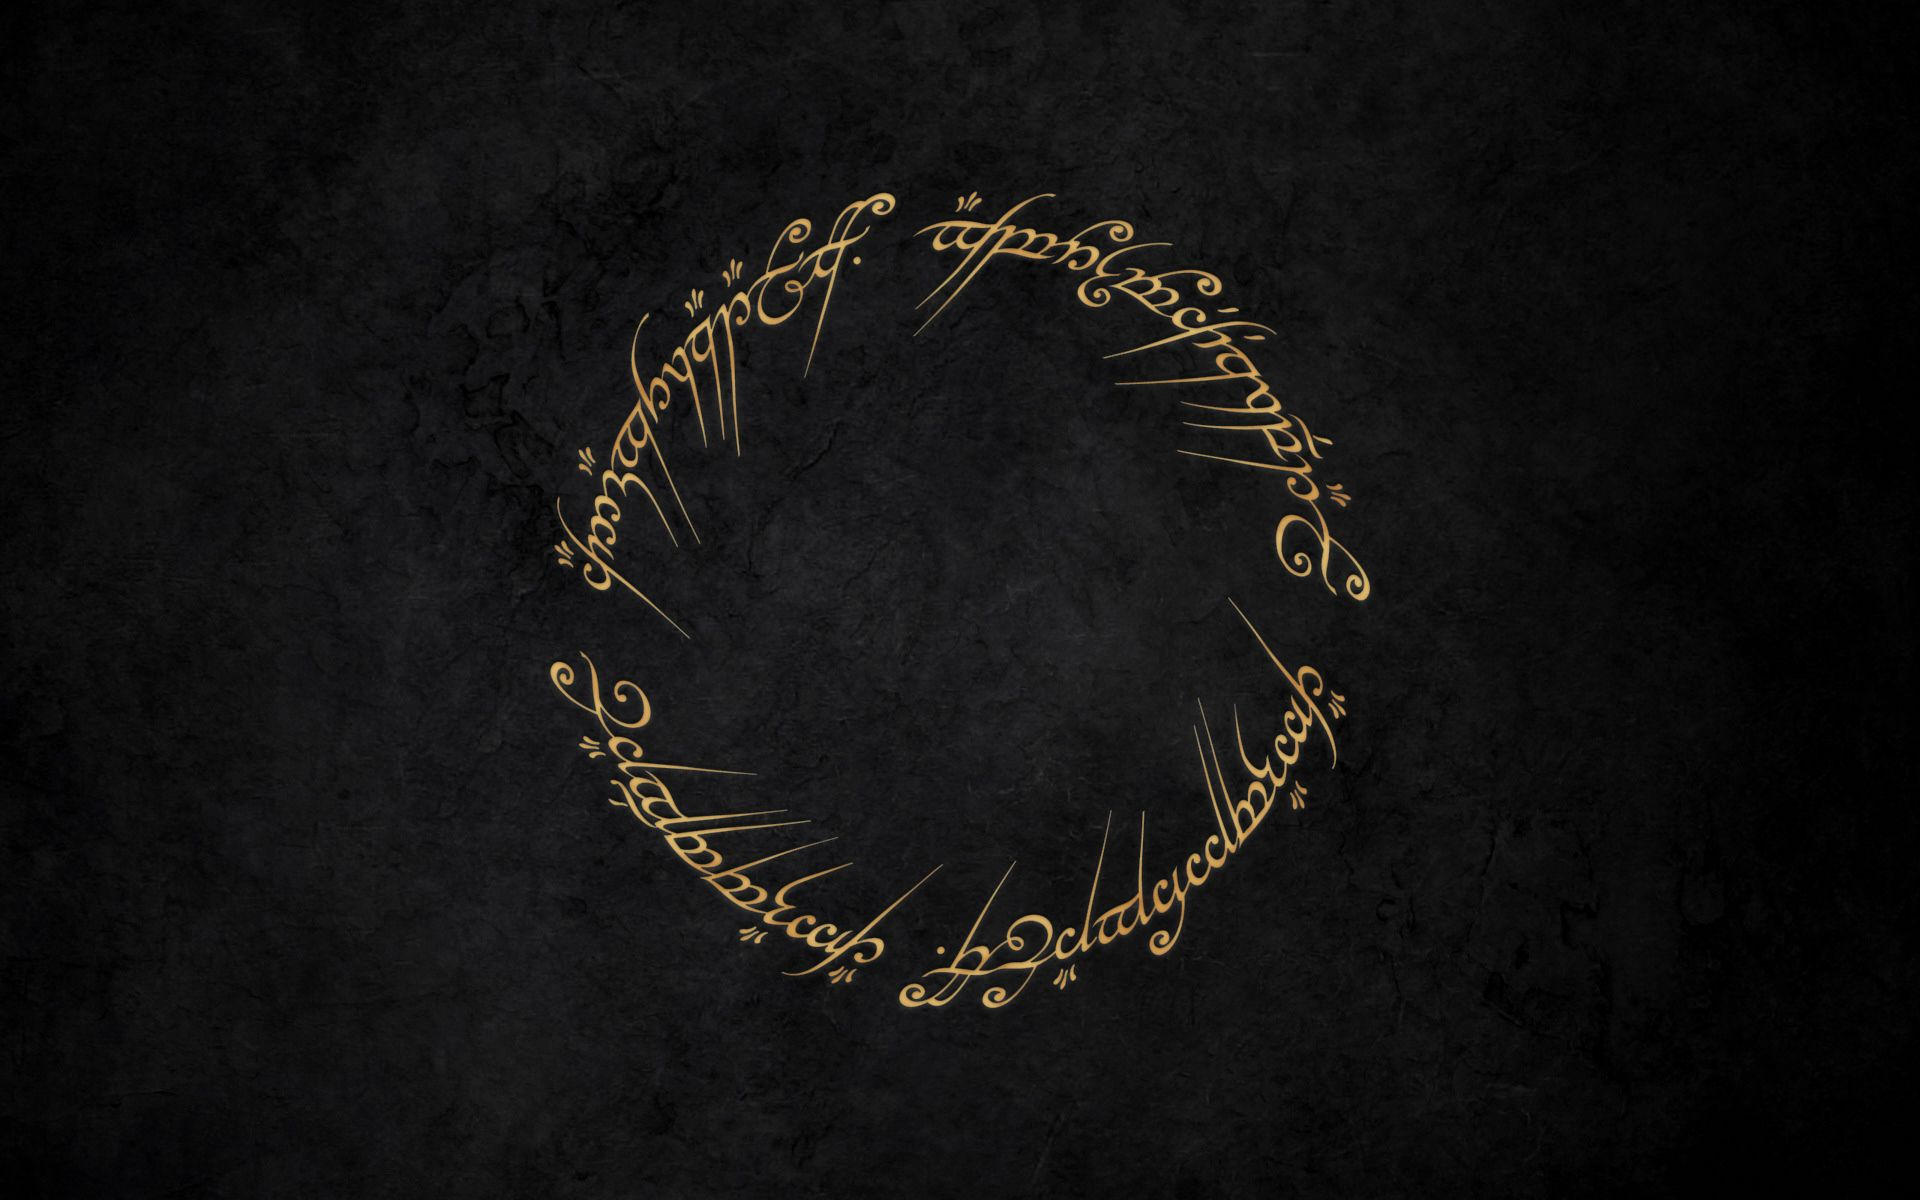 movies text typography The Lord of the Rings LOTR